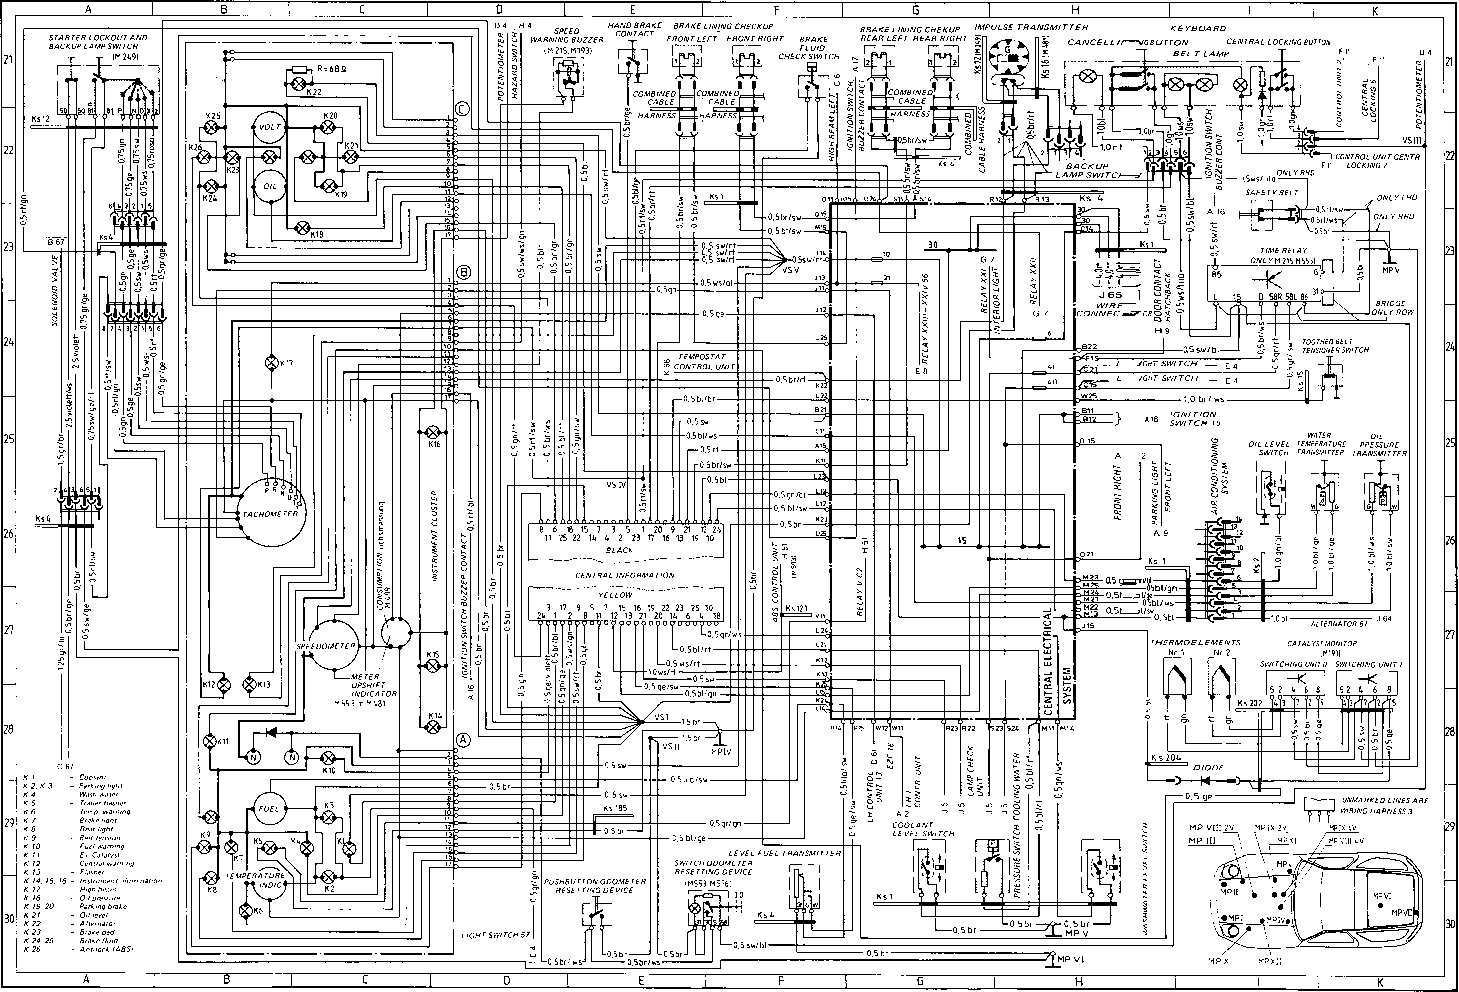 2129_923_2014 porsche 928 wiring diagram porsche wiring diagrams porsche 911 turbo vacuum diagram \u2022 wiring porsche 914 fuse box diagram at soozxer.org